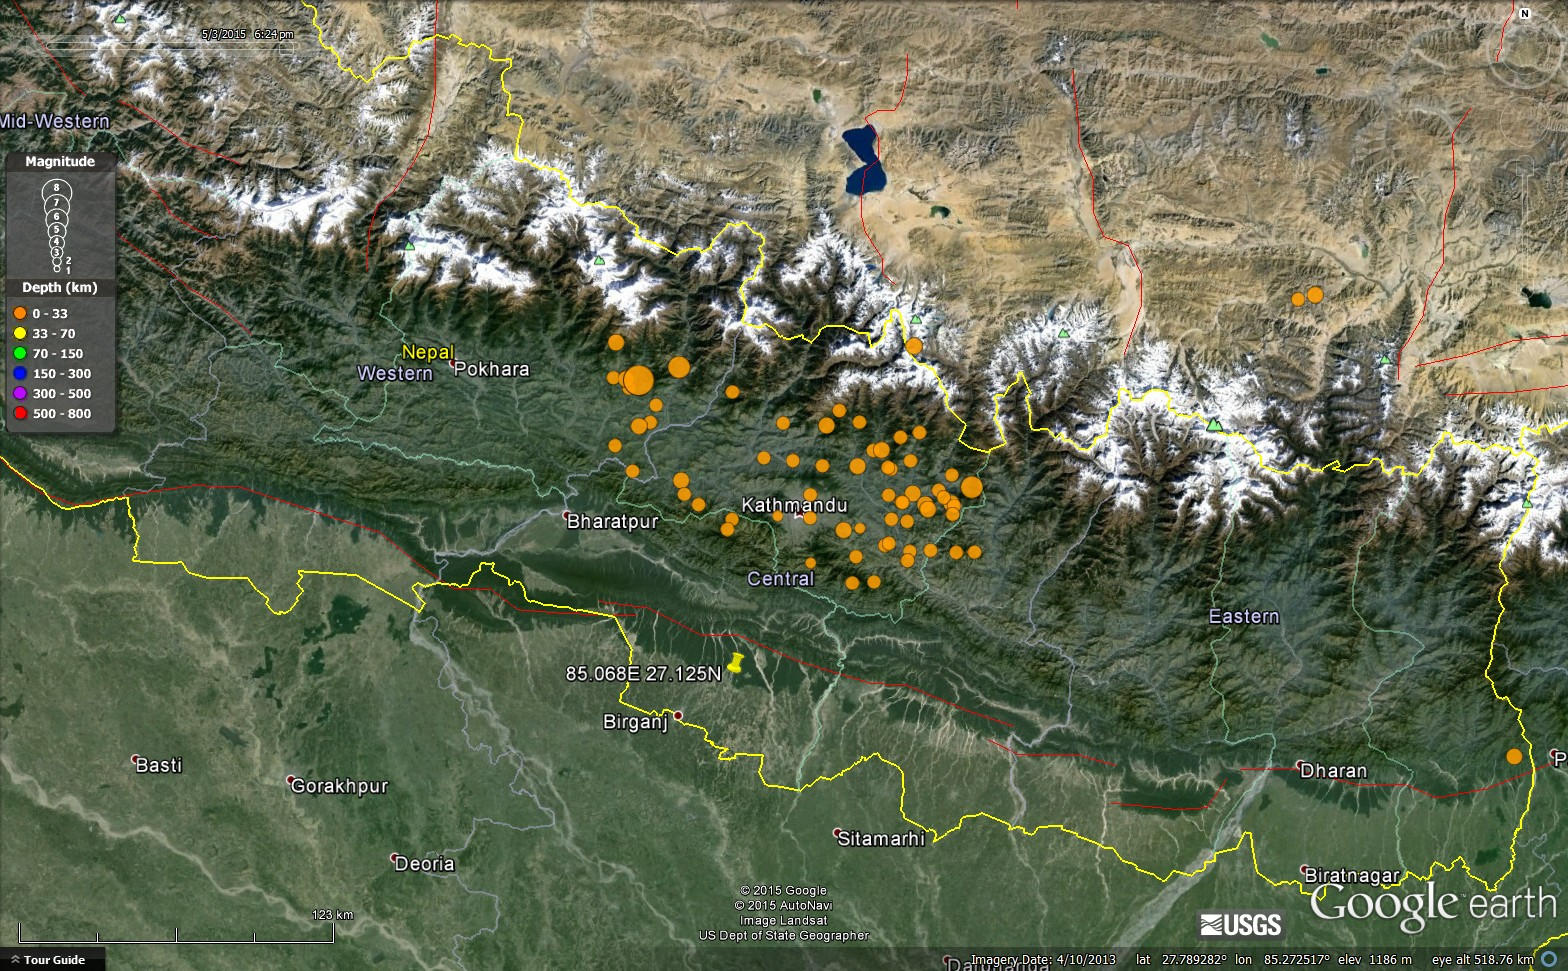 google running map with The 25th April 2015 Gorkha Nepal Earthquake With Mike Searle on 3701229704 further 1697555 in addition The 25th April 2015 Gorkha Nepal Earthquake With Mike Searle besides Google in addition George Street  Aberdeen.